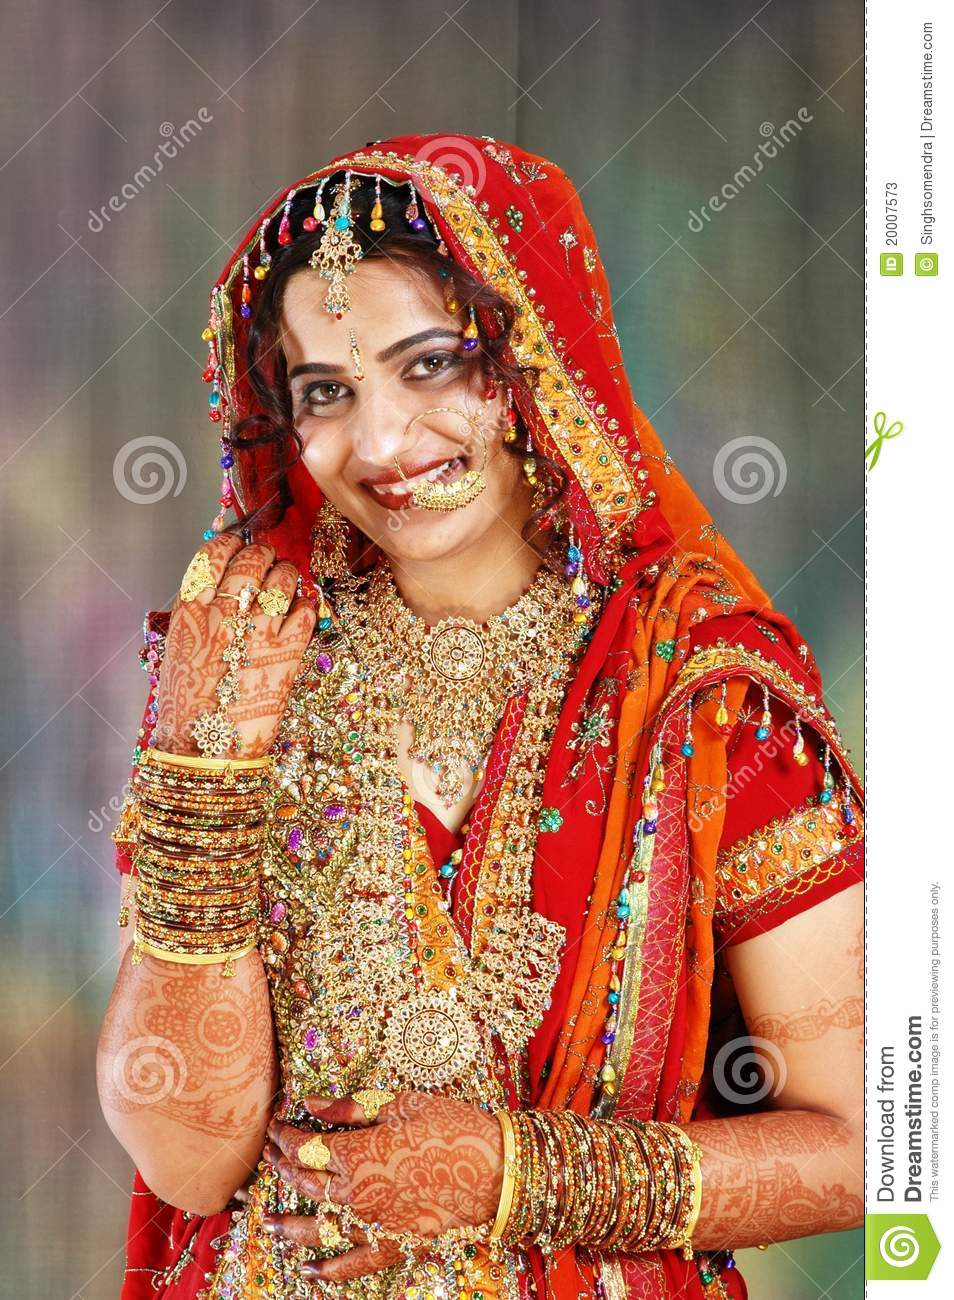 Indian Bride In Her Wedding Dress Showing Stock Image - Image of ...